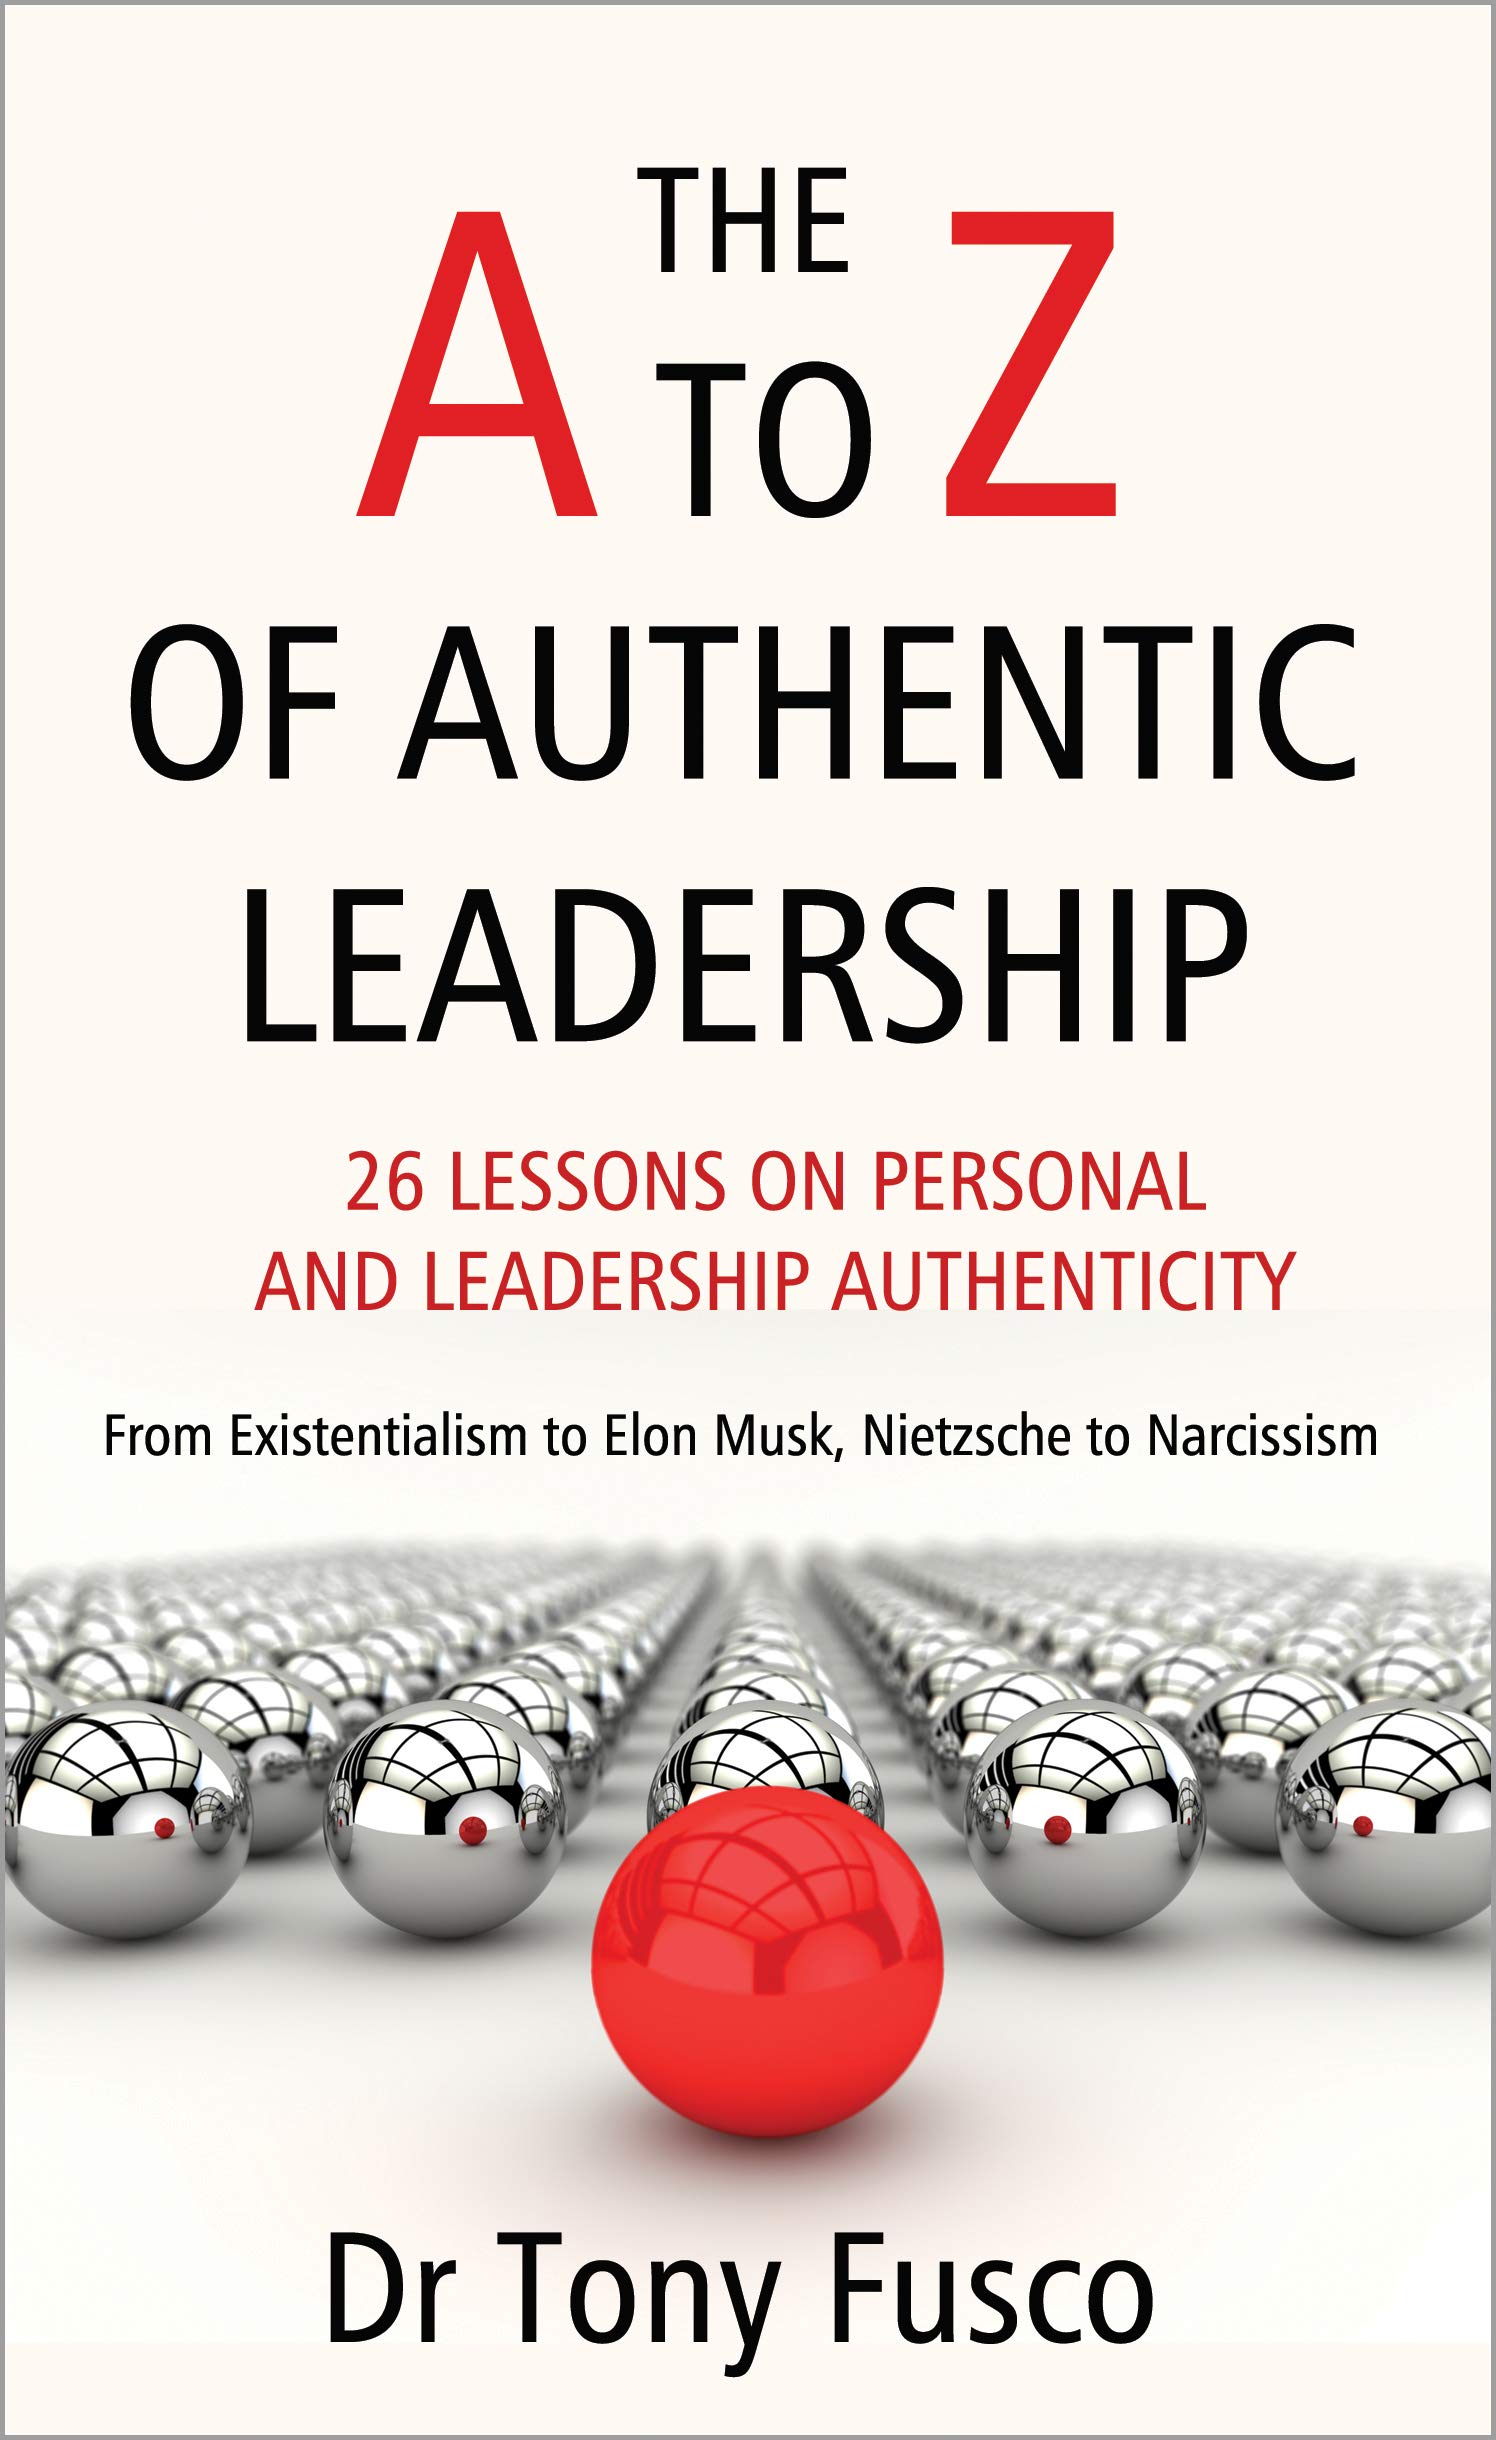 THE A TO Z OF AUTHENTIC LEADERSHIP: 26 LESSONS ON PERSONAL AND LEADERSHIP AUTHENTICITY - From Existentialism to Elon Musk, Nietzsche to Narcissism